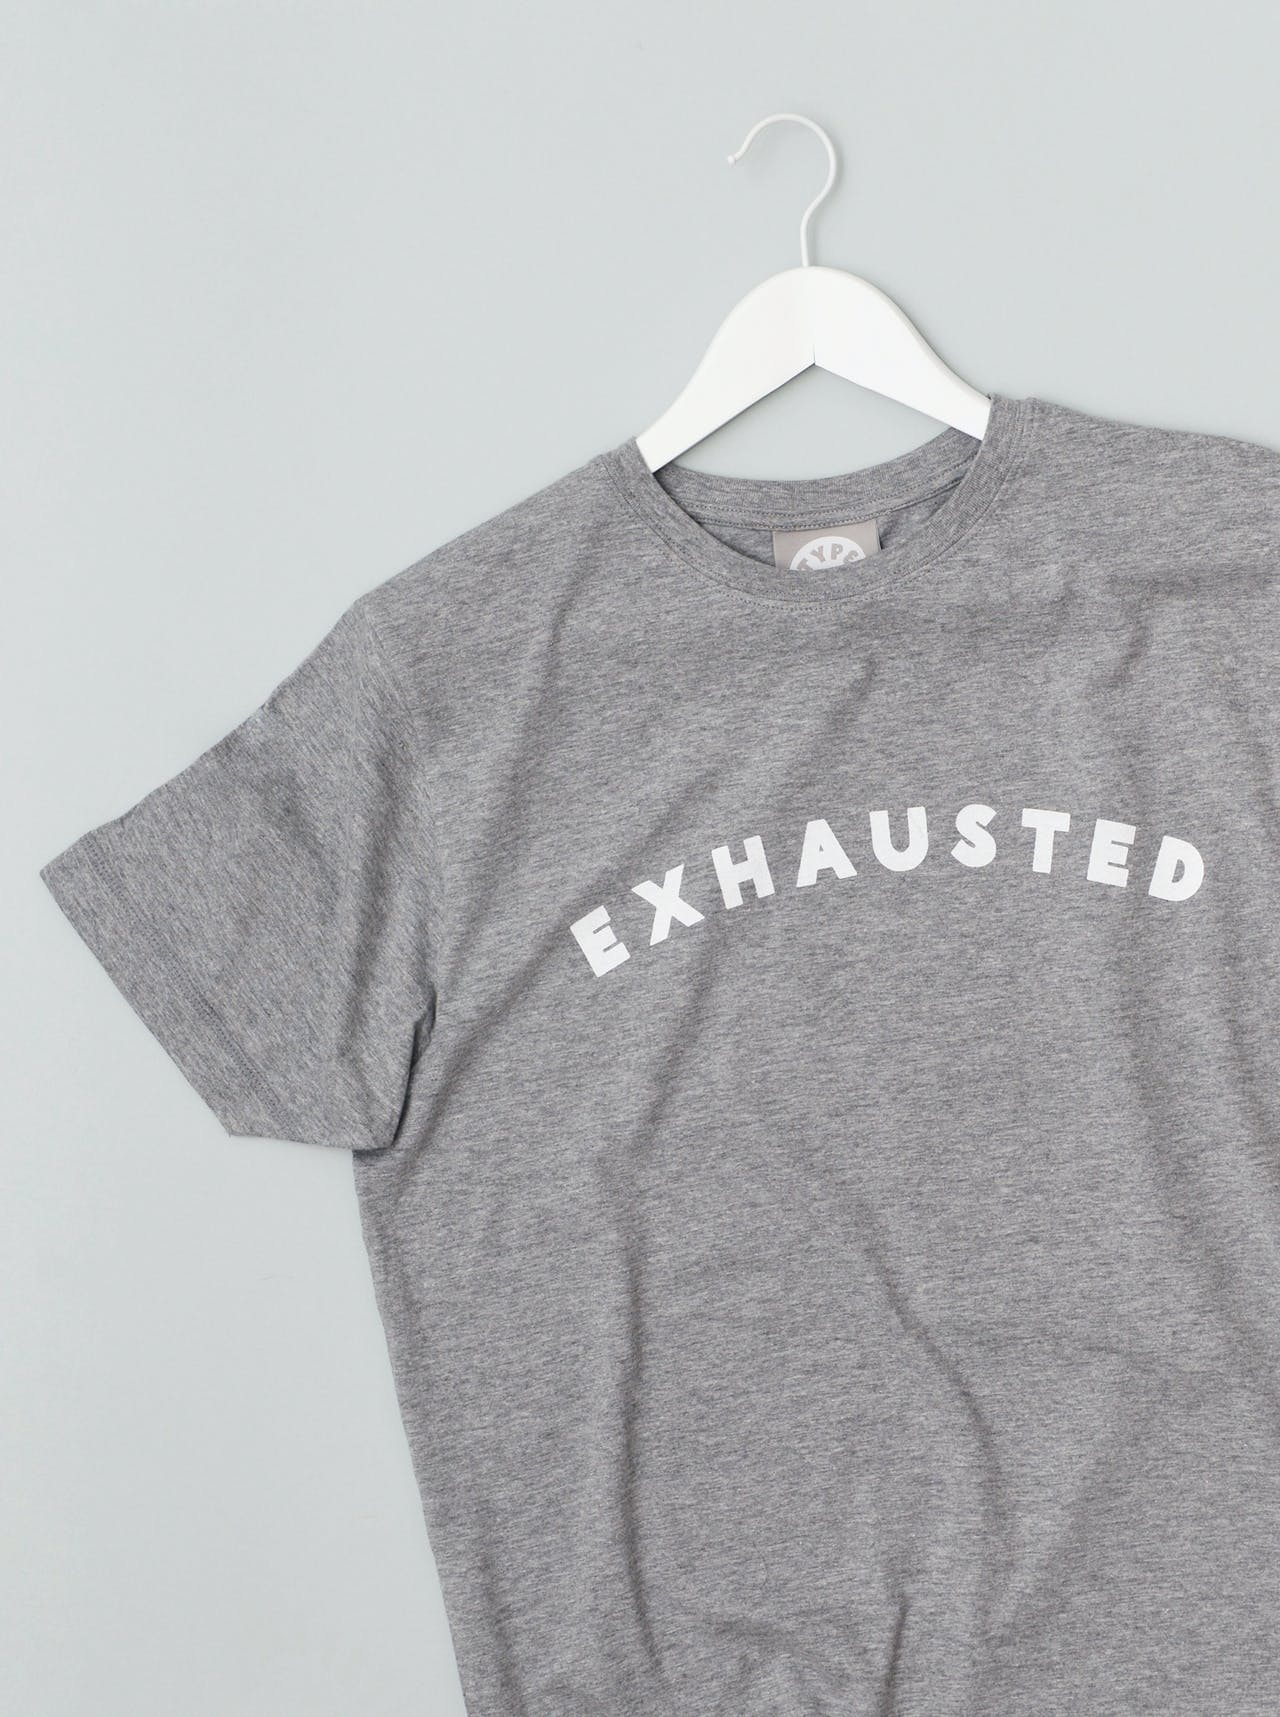 Exhausted - Mens T-Shirt